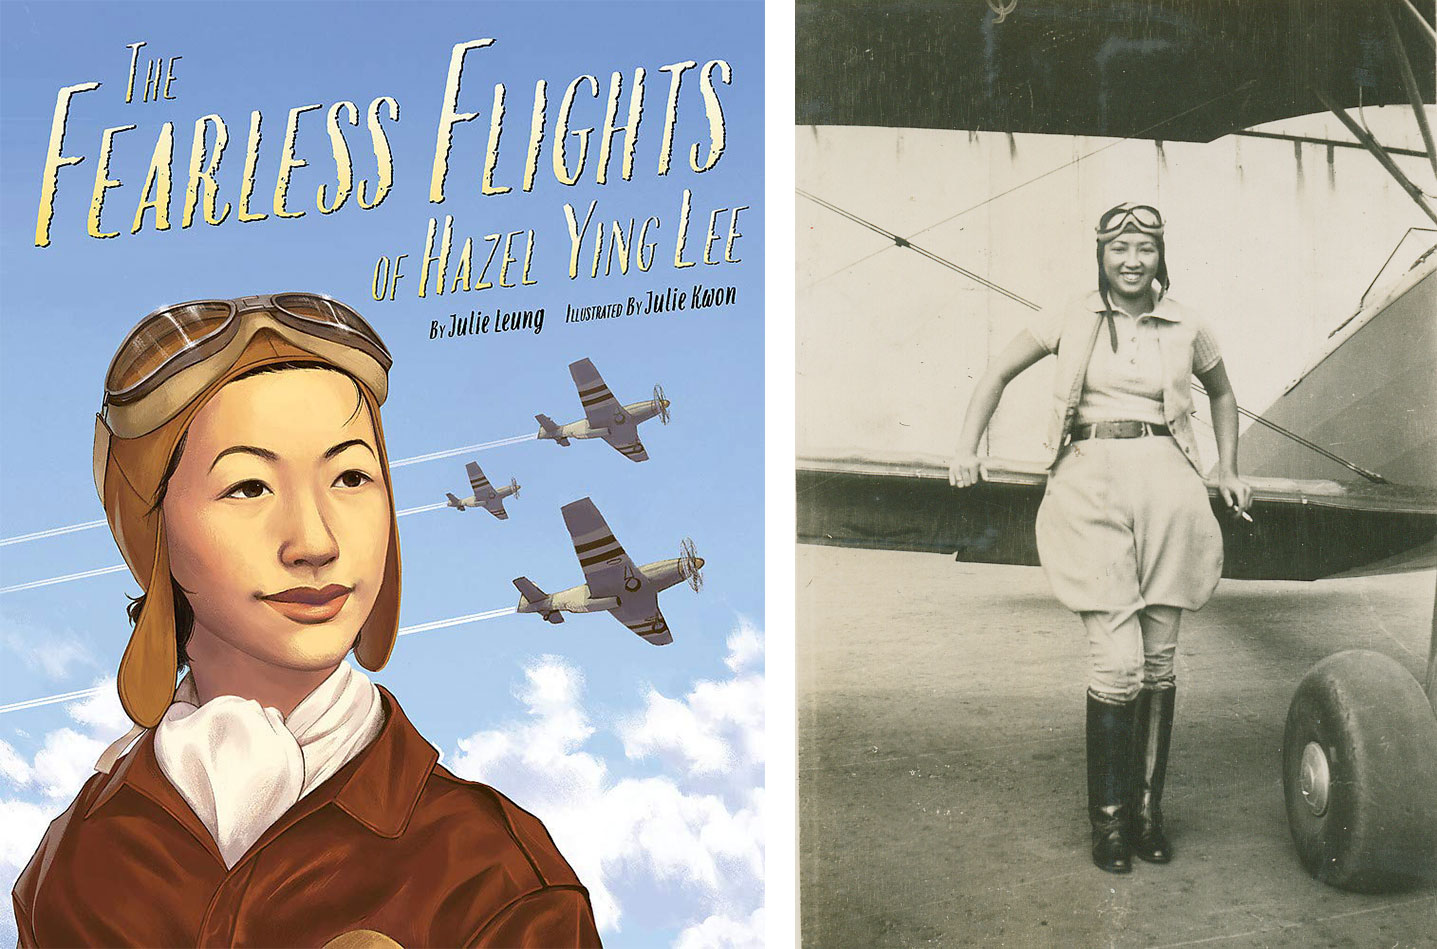 Illustrated picture book cover The Fearless Flights of Hazel Ying Lee and archival photo of Lee in pilot gear